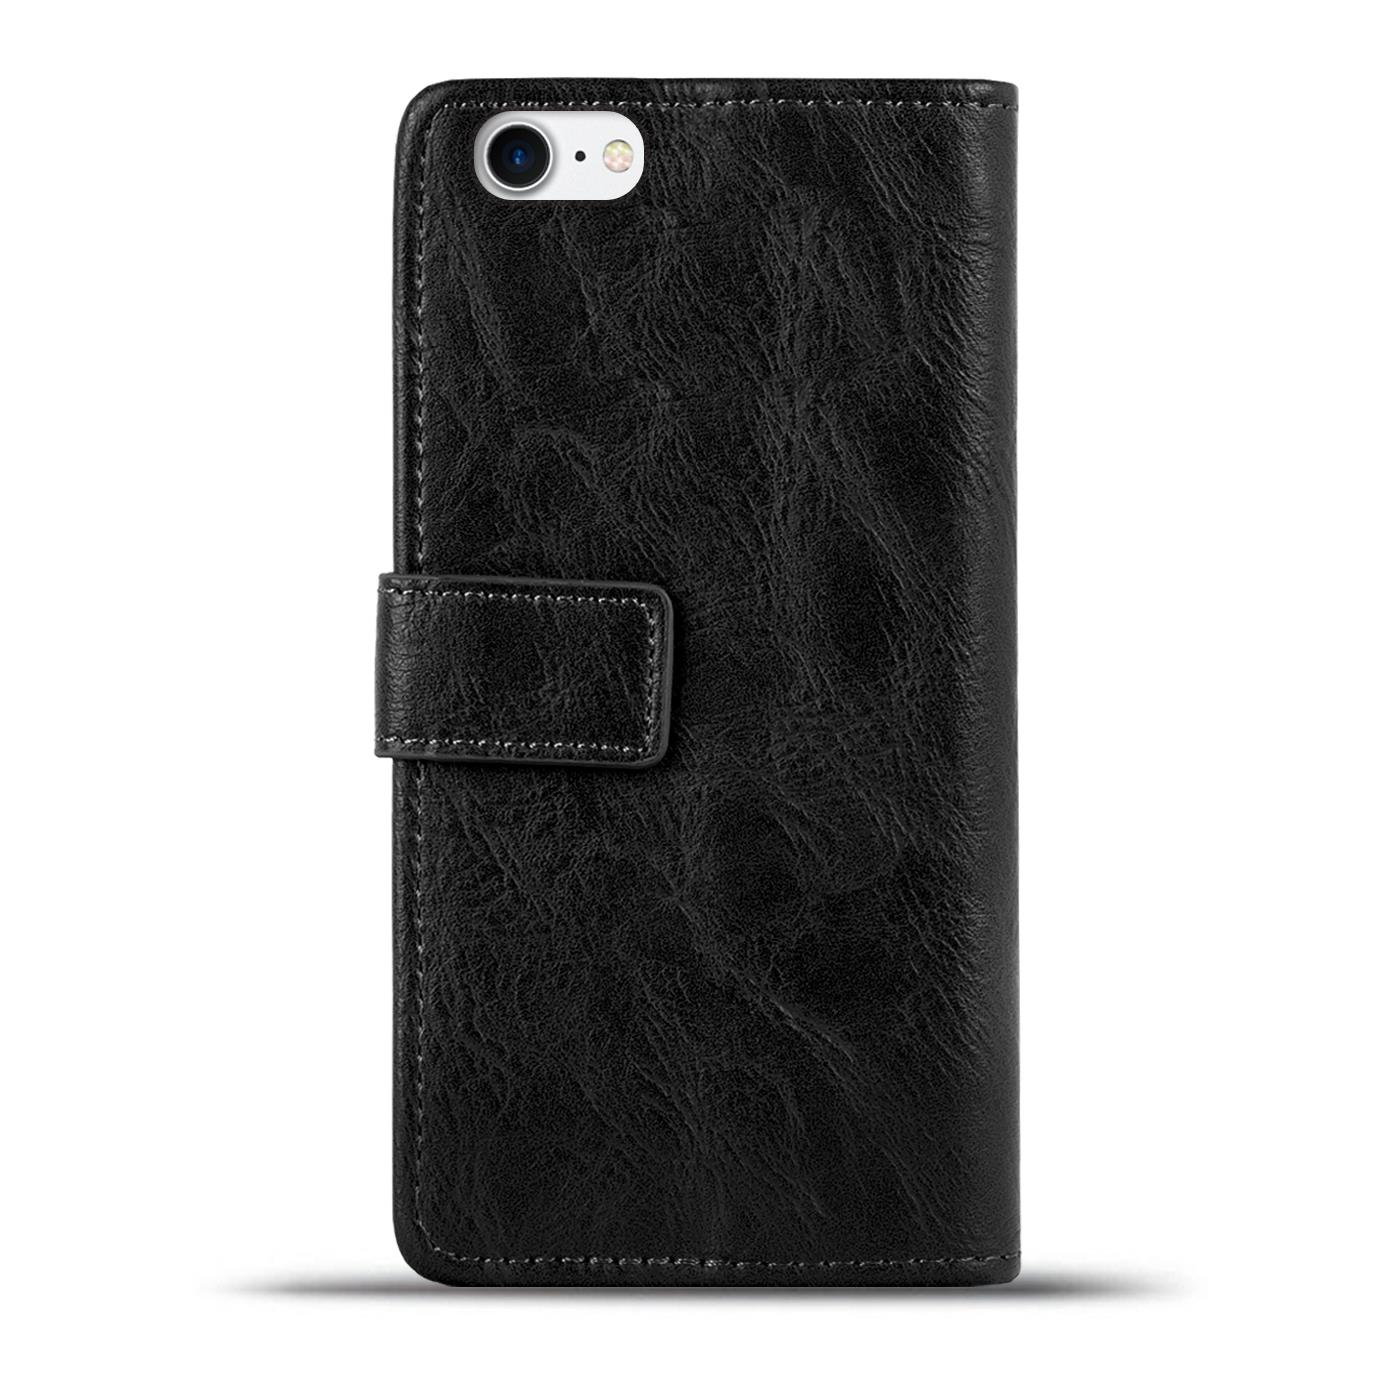 handy tasche h lle apple iphone 7 case klapph lle pu leder. Black Bedroom Furniture Sets. Home Design Ideas